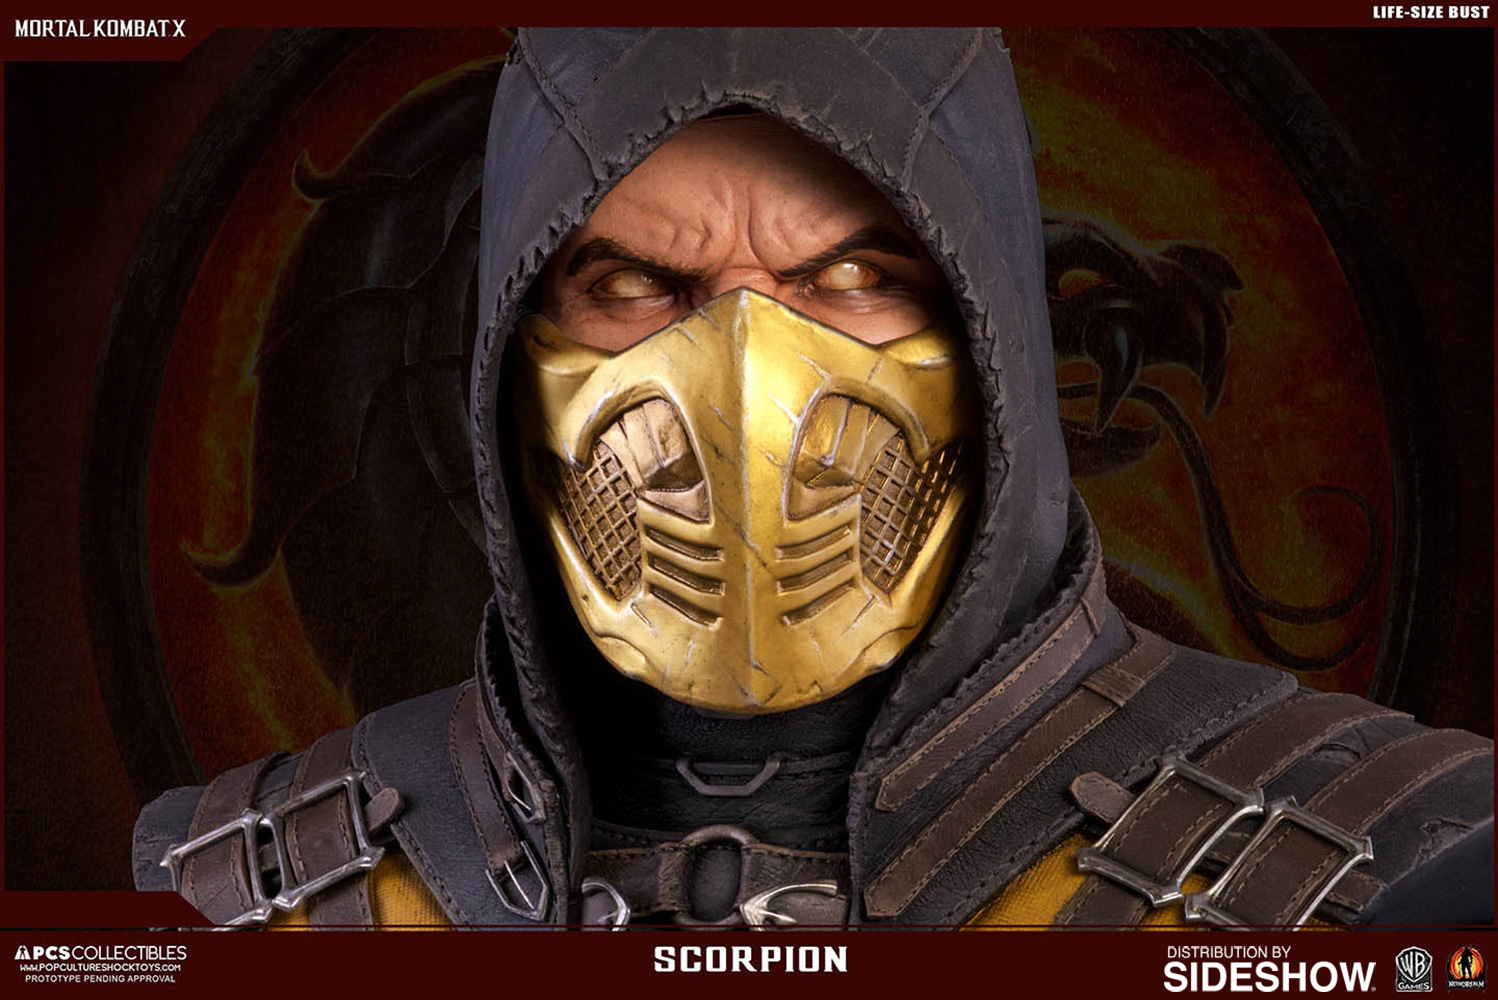 Mortal Kombat X Scorpion Life Size Bust By Pop Culture Shock